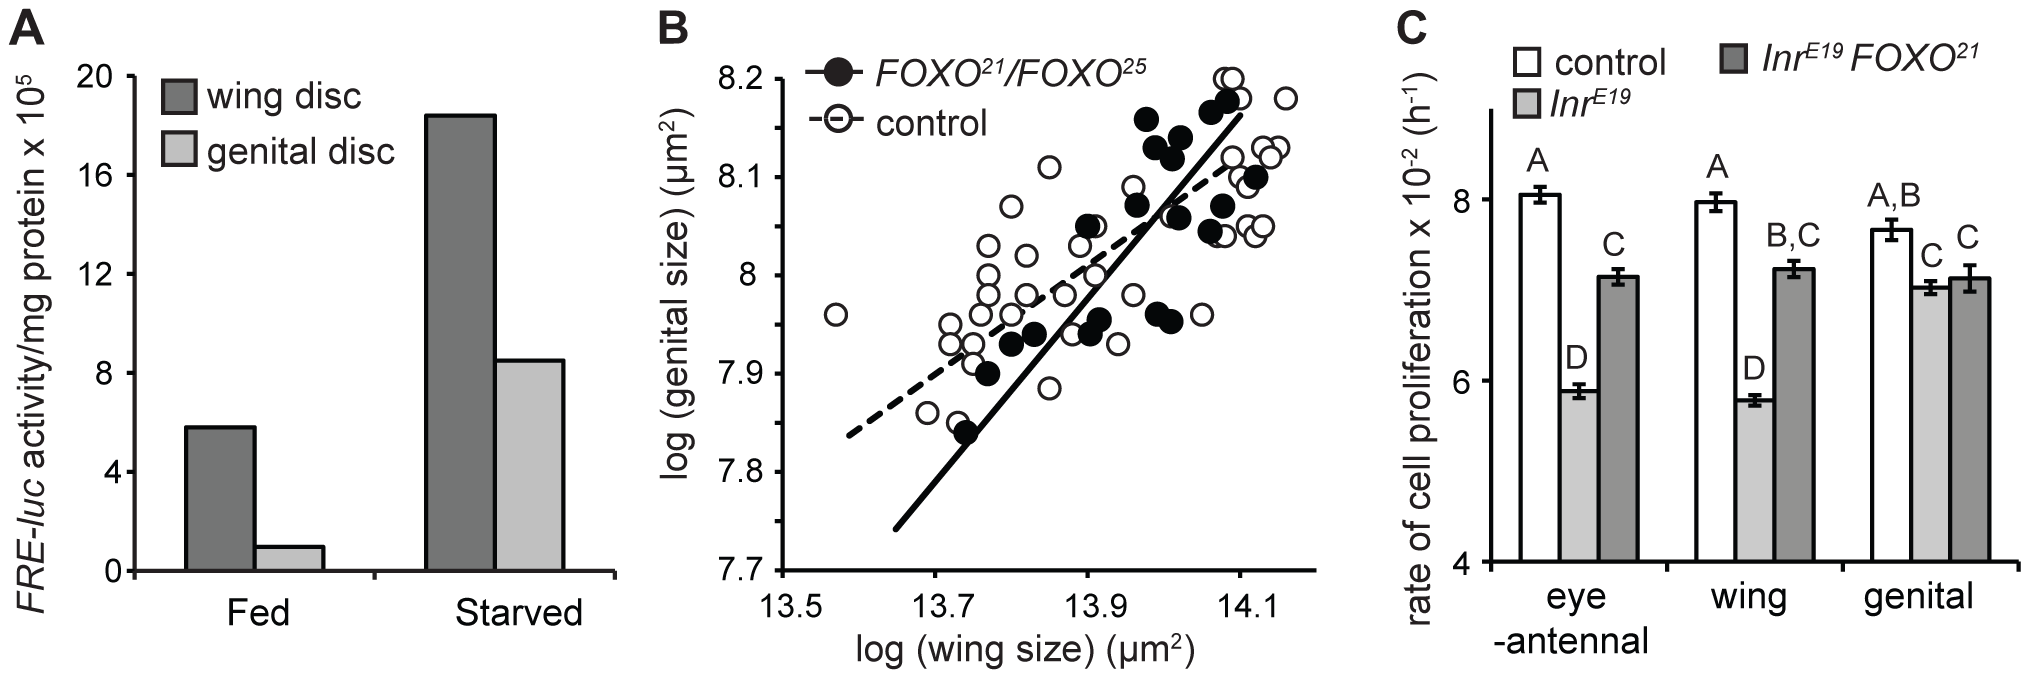 FOXO is necessary to maintain organ-specific nutritional plasticity and insulin sensitivity.